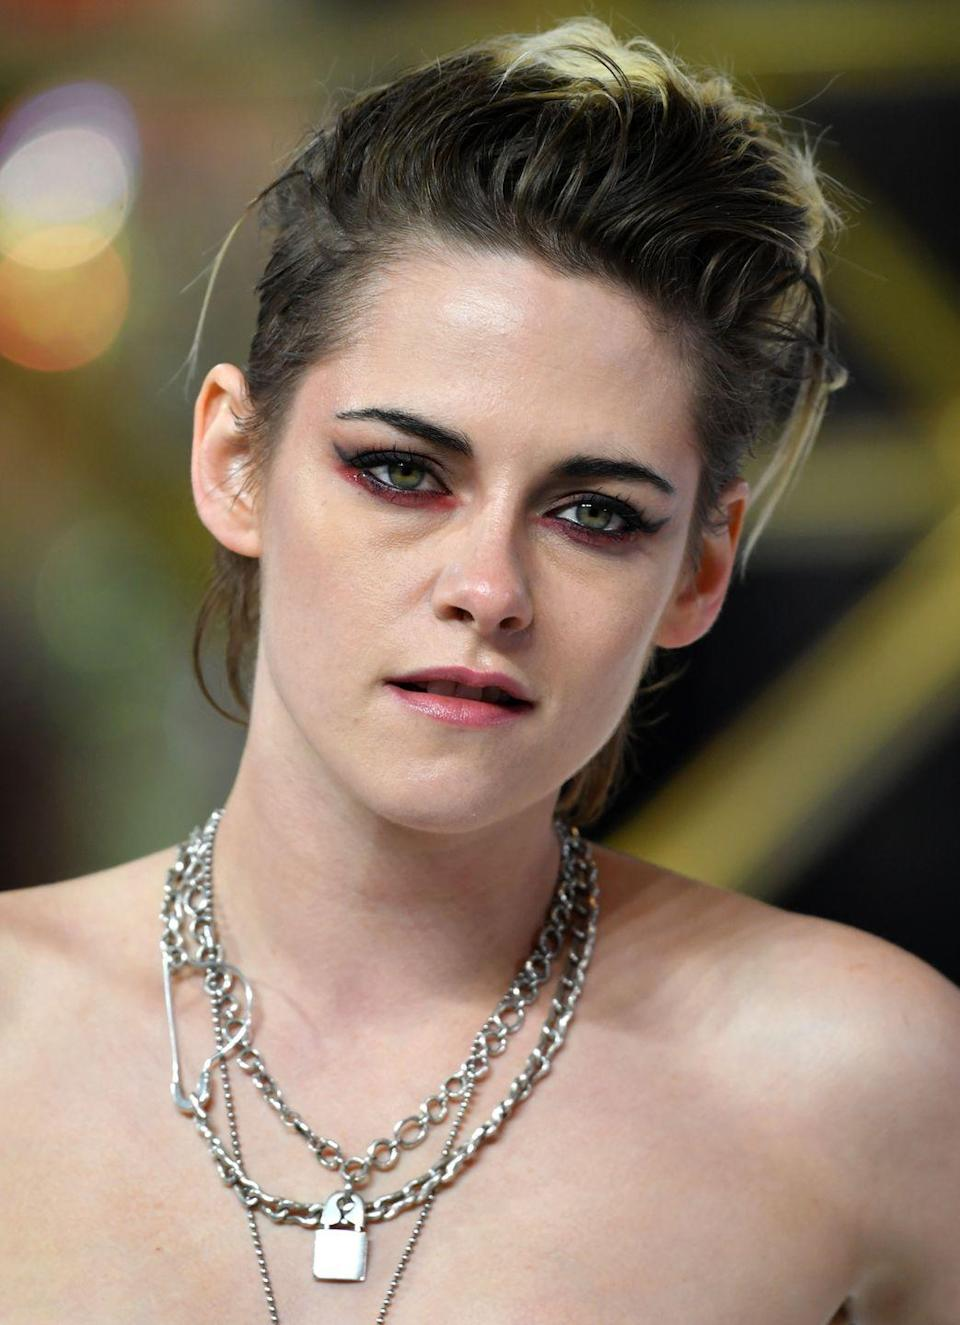 <p>The queen of cool, let Kristen Stewart school you on how to make grown out roots and a modern mullet look seriously epic.</p>